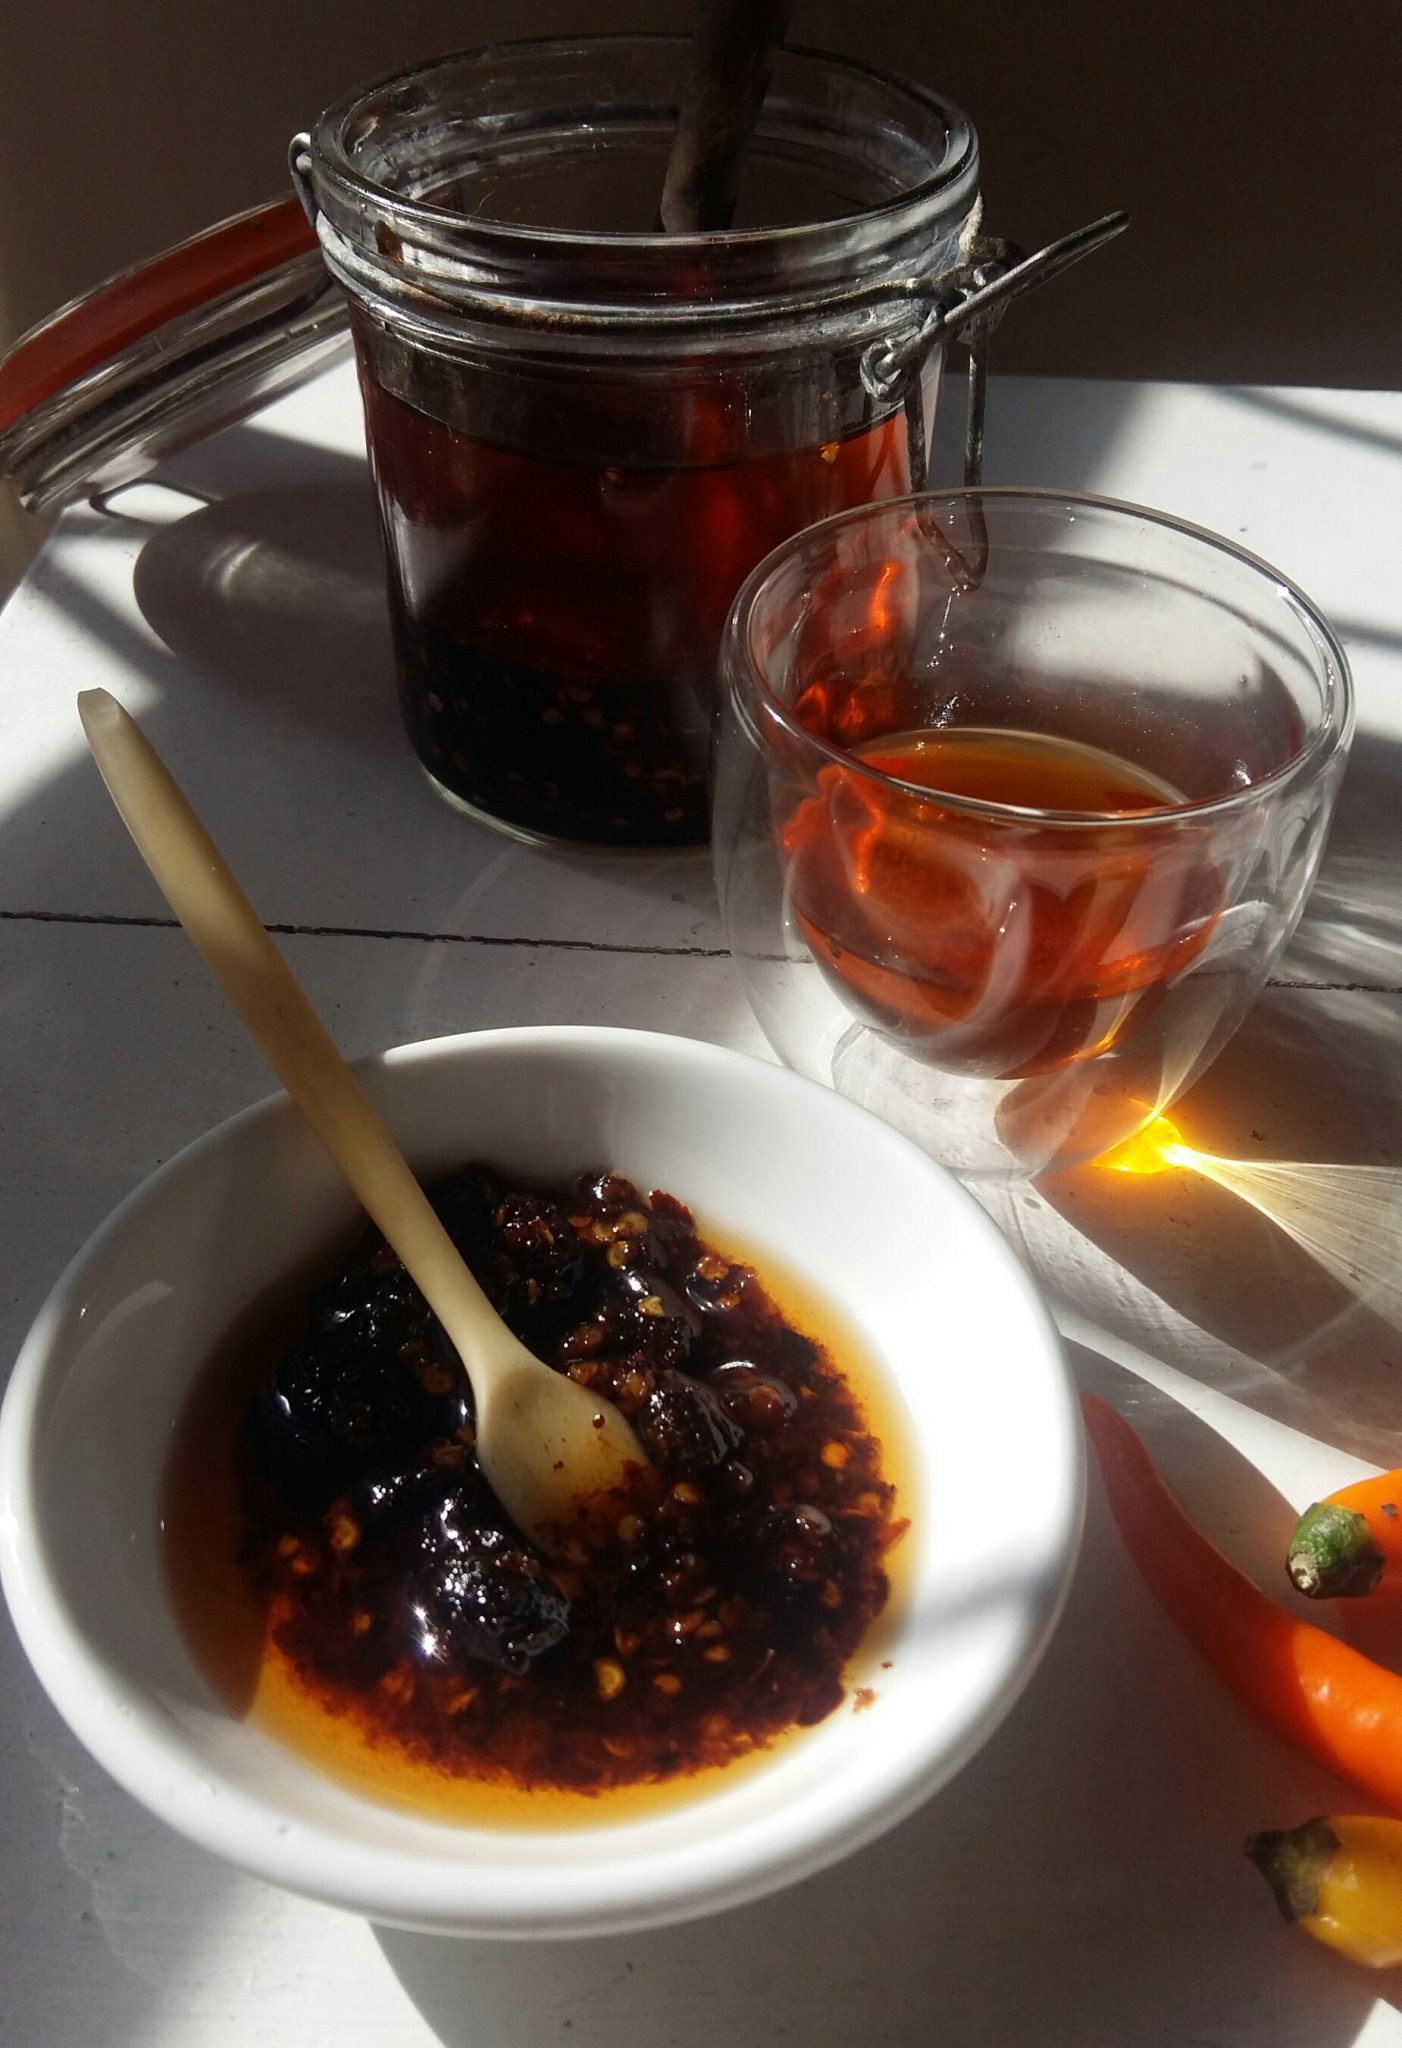 A blast of sunny flavour - spicy roast chilli oil